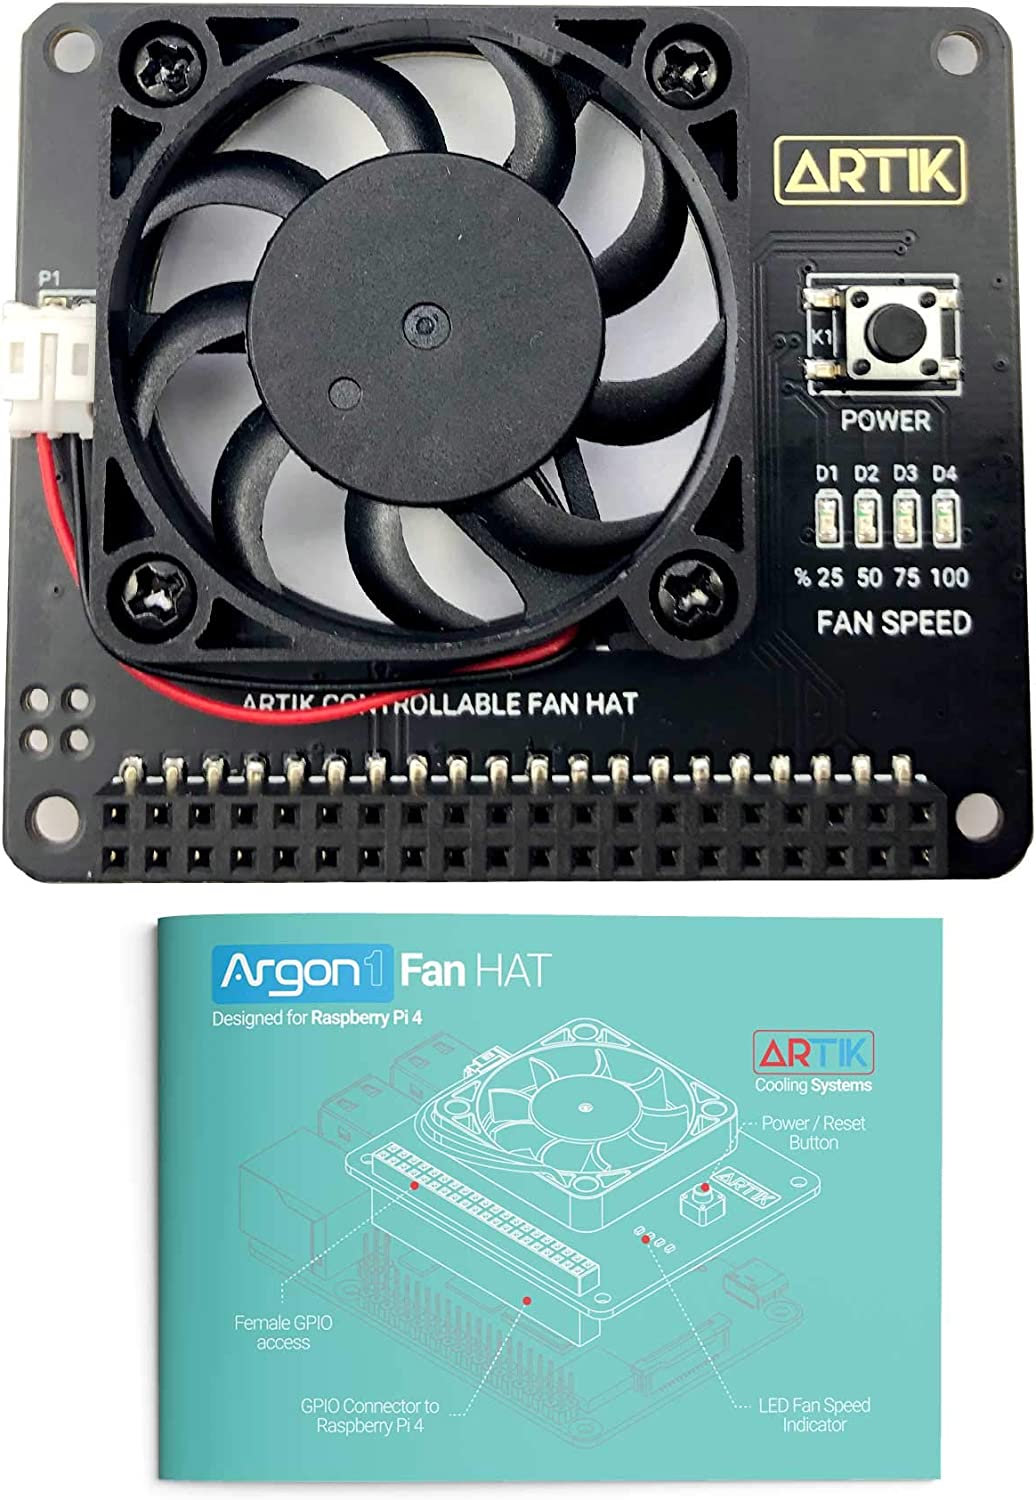 Argon Fan HAT for Raspberry Pi 4, Raspberry Pi 3B, and Raspberry Pi 3 B+ | Includes 40mm Fan and Power Button | Provides Safe Shutdown, Forced Shutdown, and Rebooting